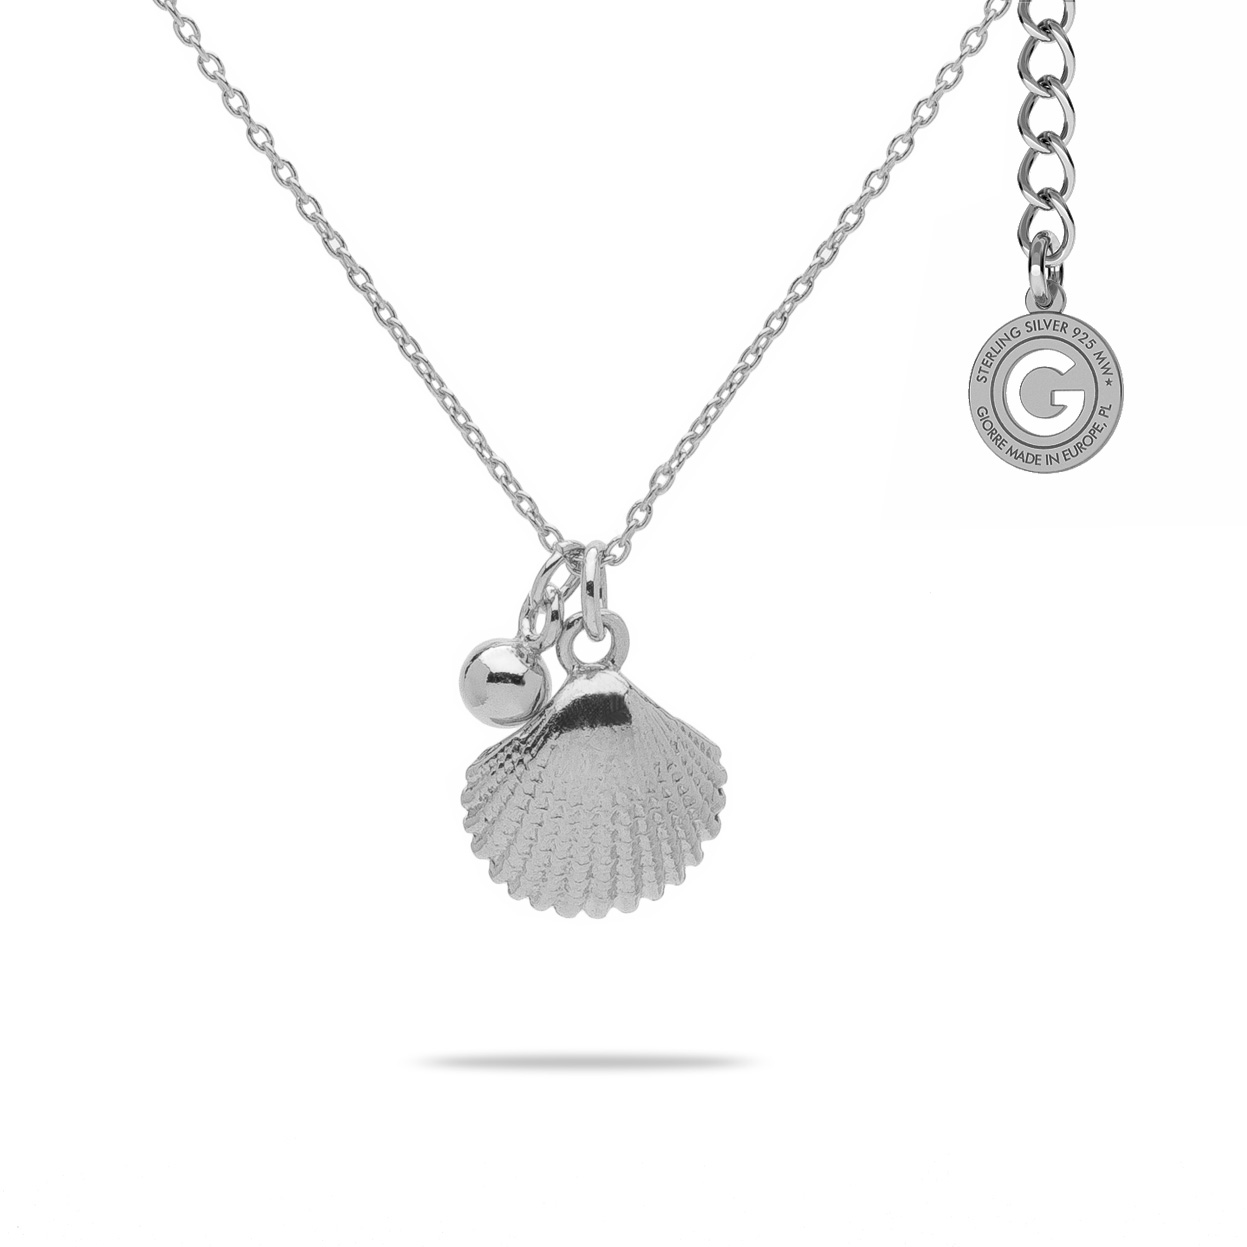 SHELL NECKLACE STERLING SILVER 925